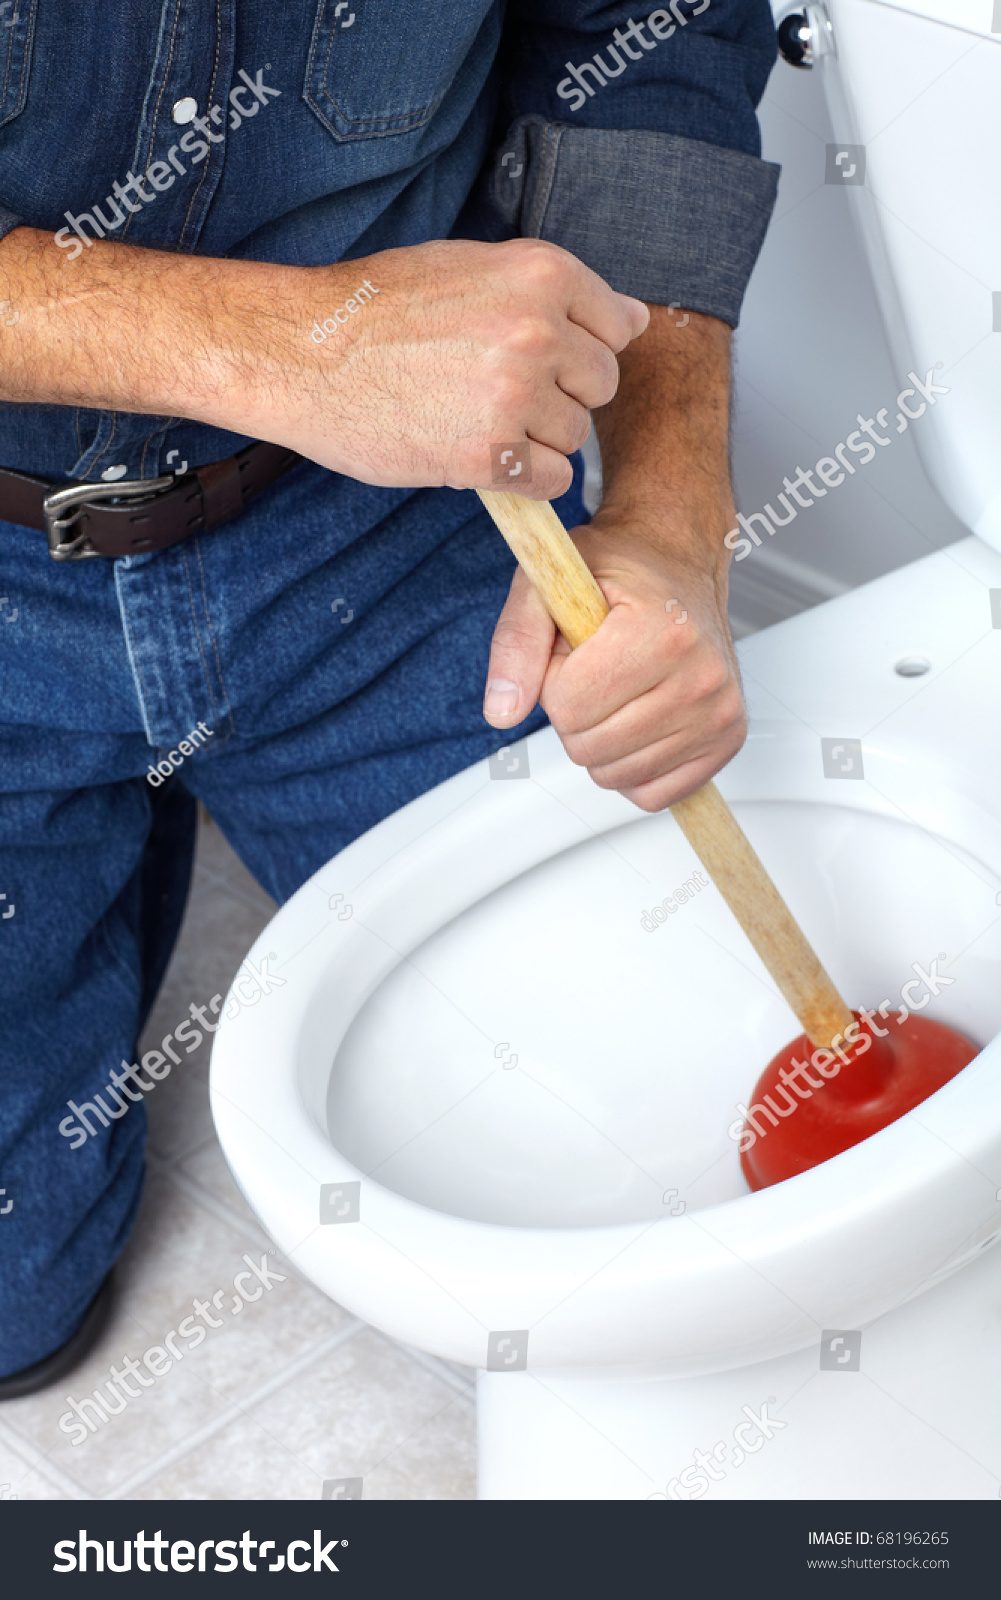 plumber with a toilet plunger stock photo 68196265 shutterstock. Black Bedroom Furniture Sets. Home Design Ideas